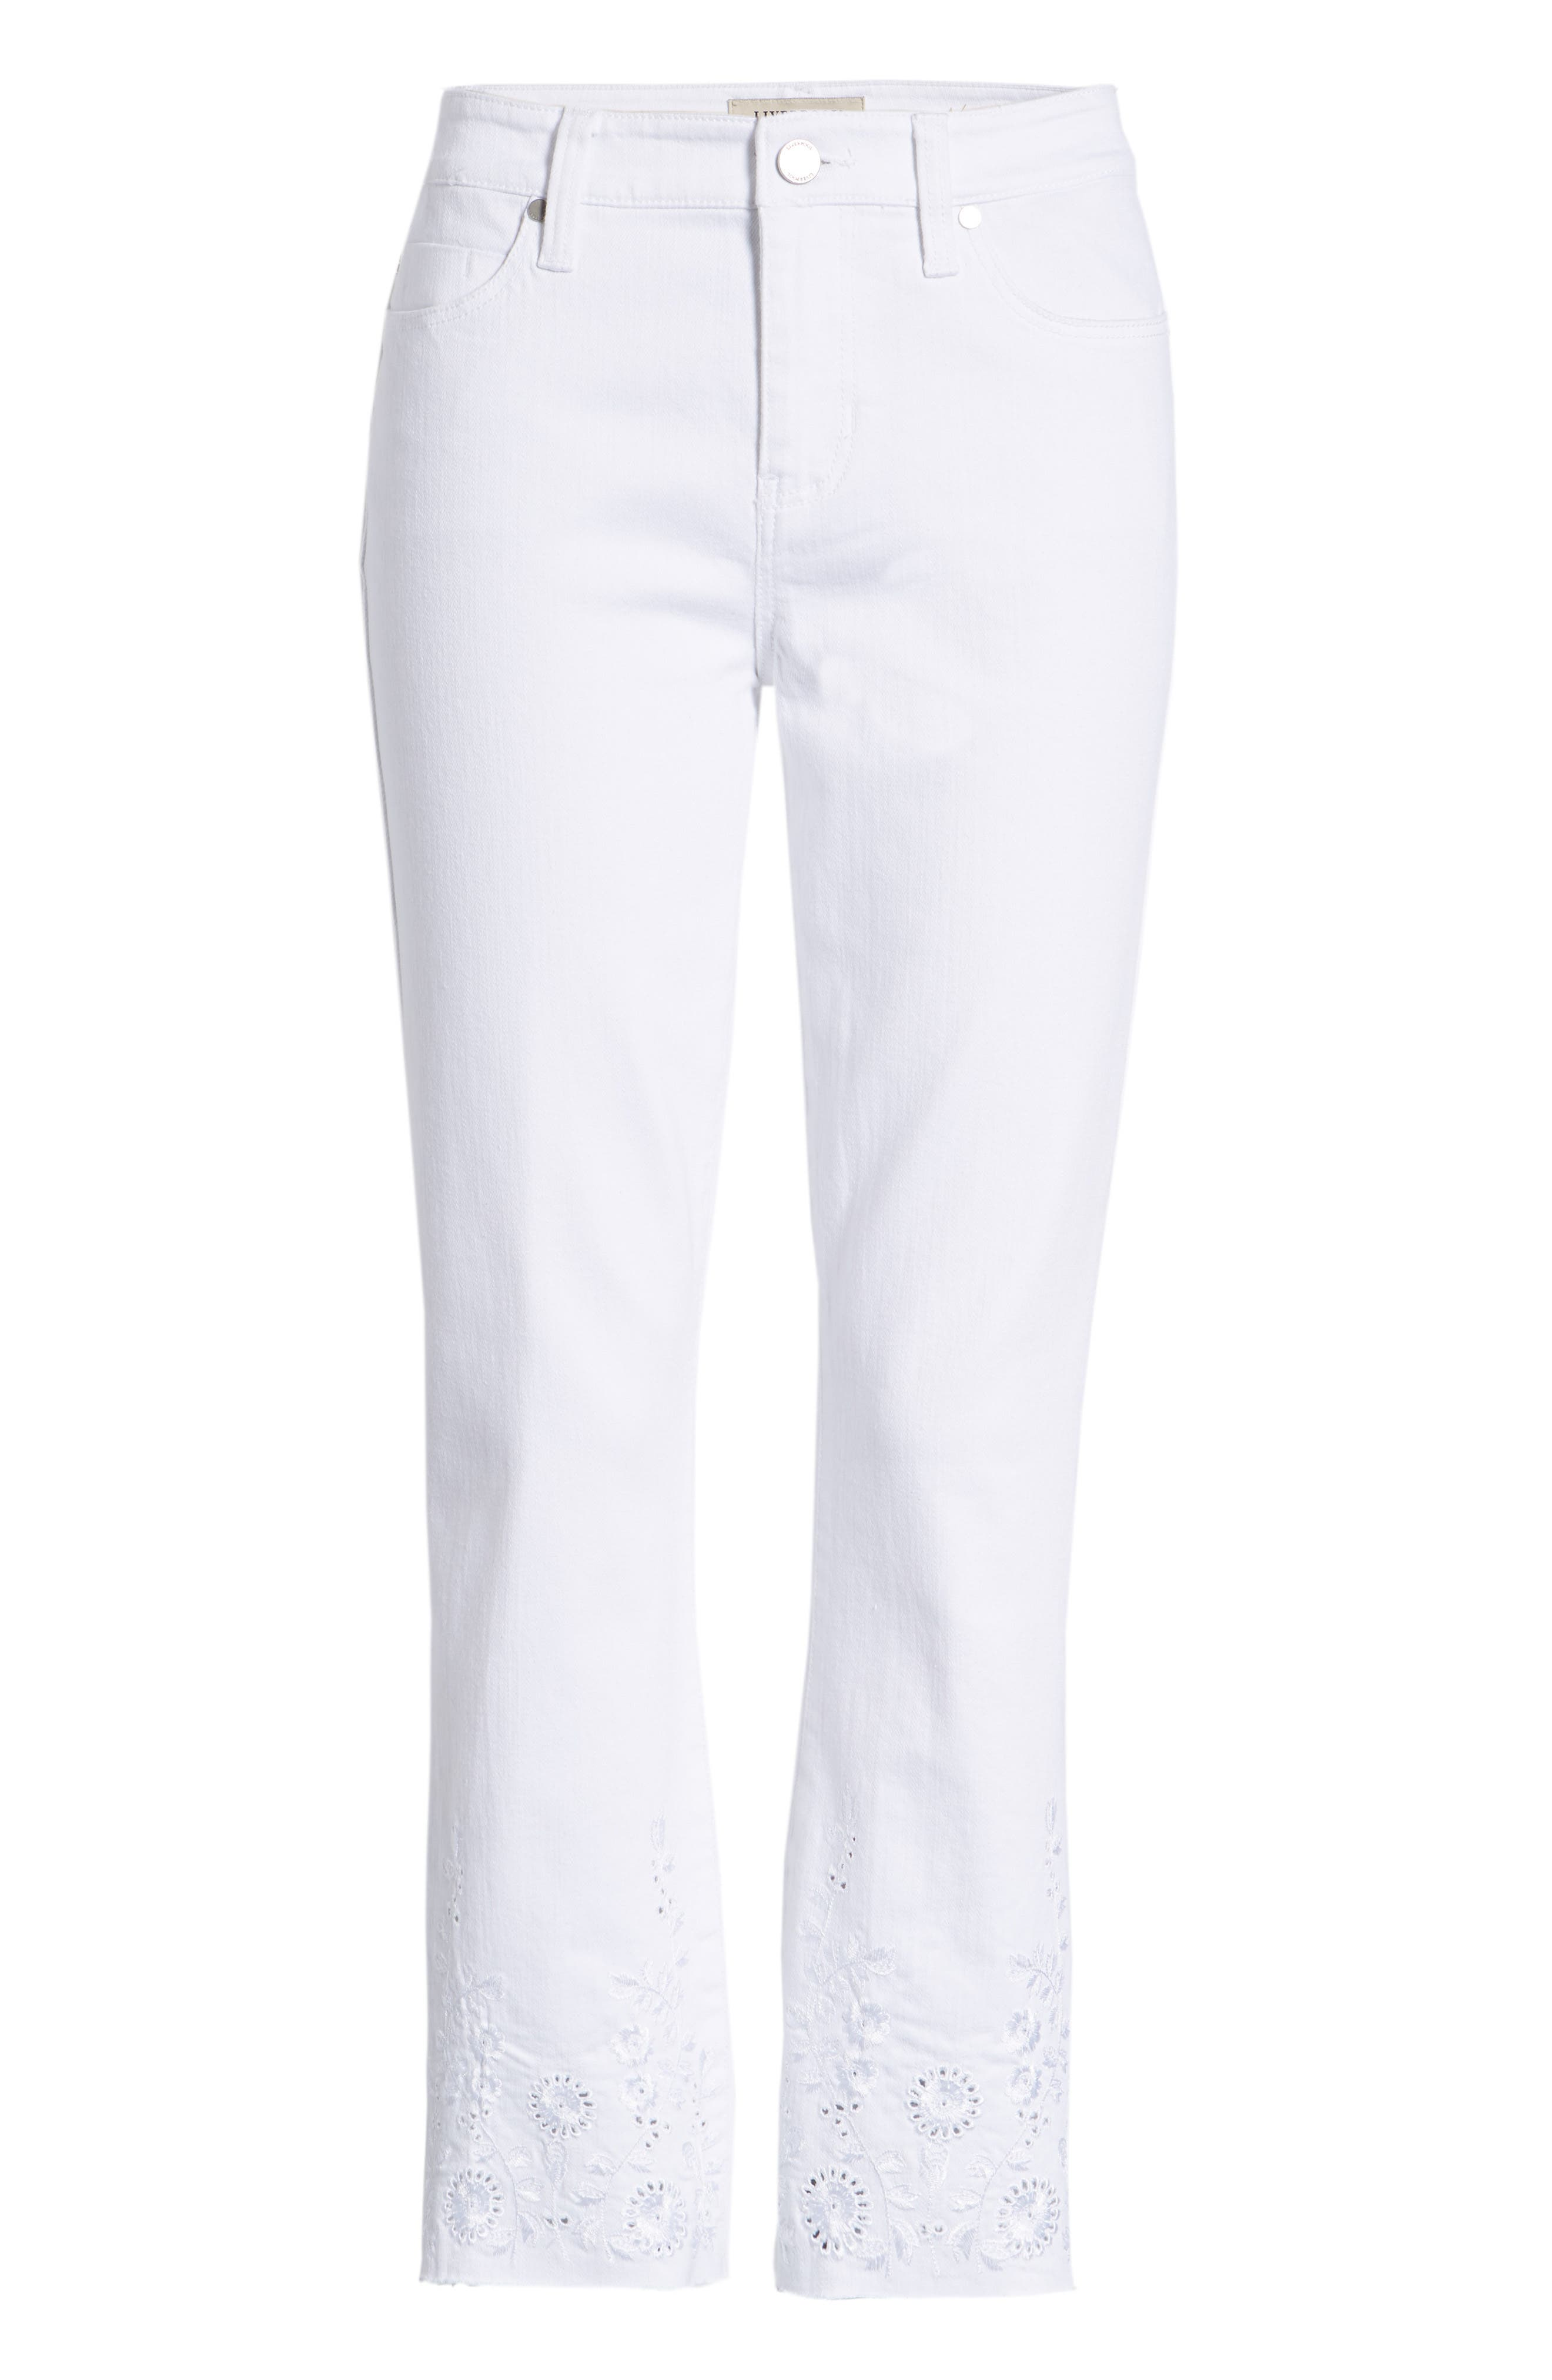 Hannah Embroidered Raw Hem Jeans,                             Alternate thumbnail 7, color,                             Bright White